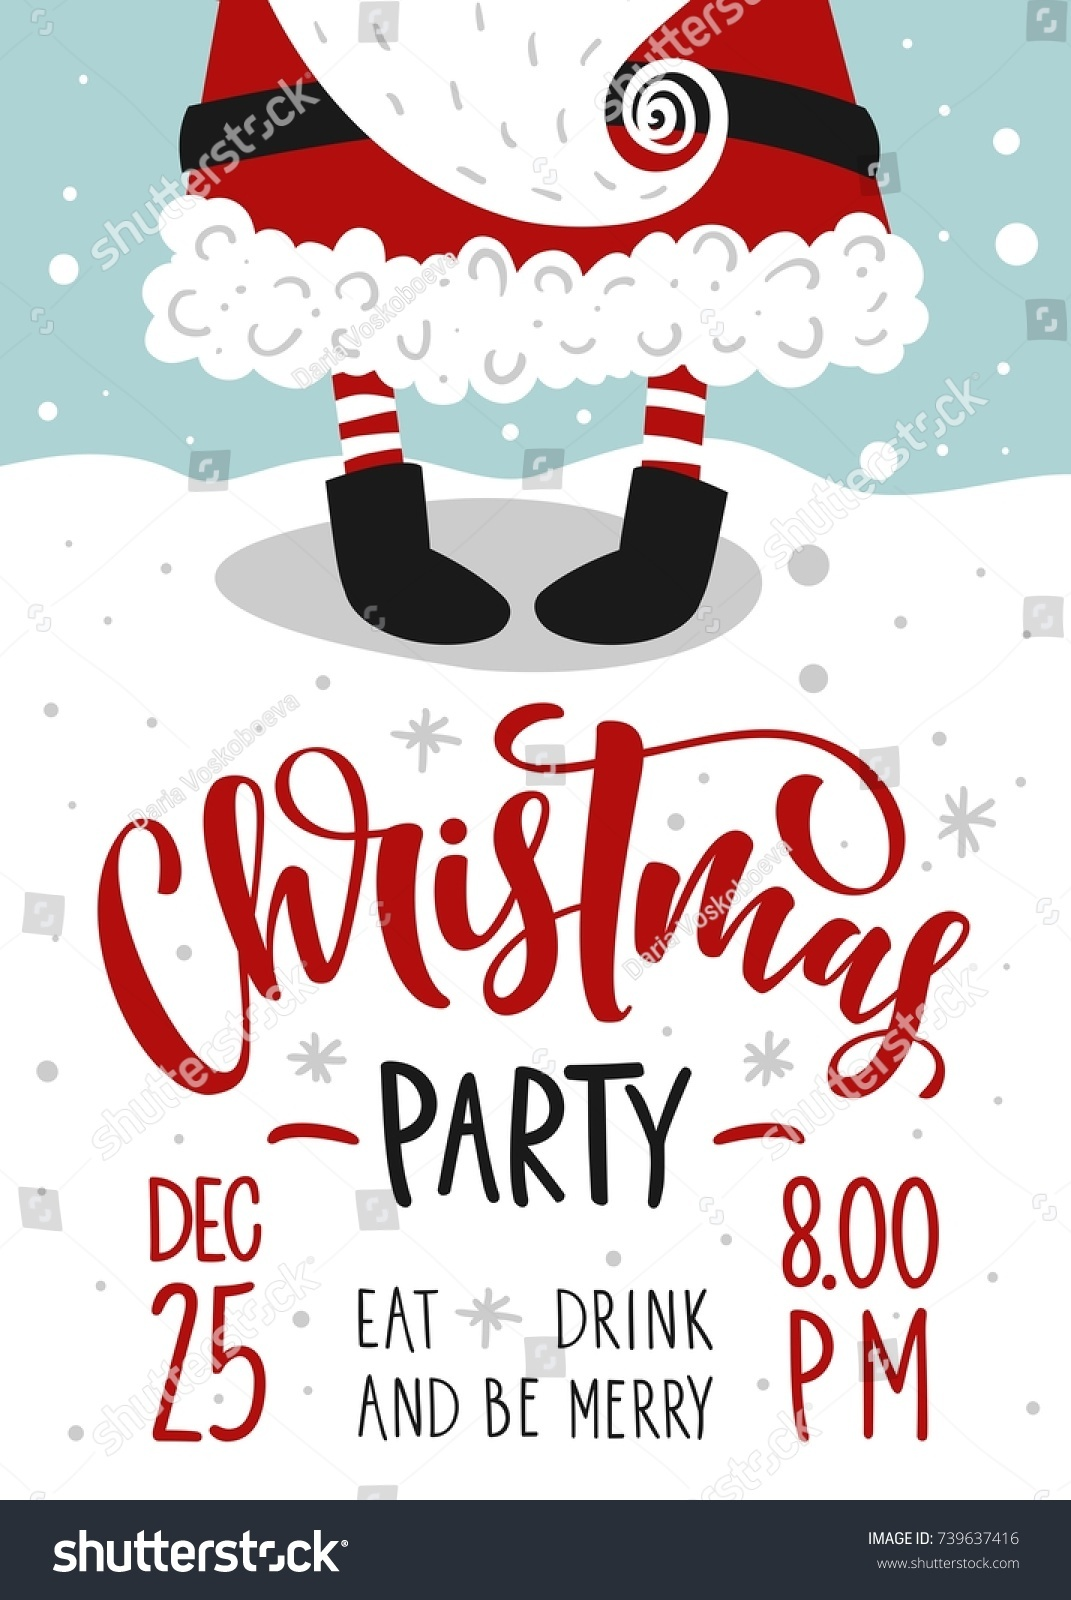 Christmas Party Invitation Vector Template Calligraphy Stock Vector ...